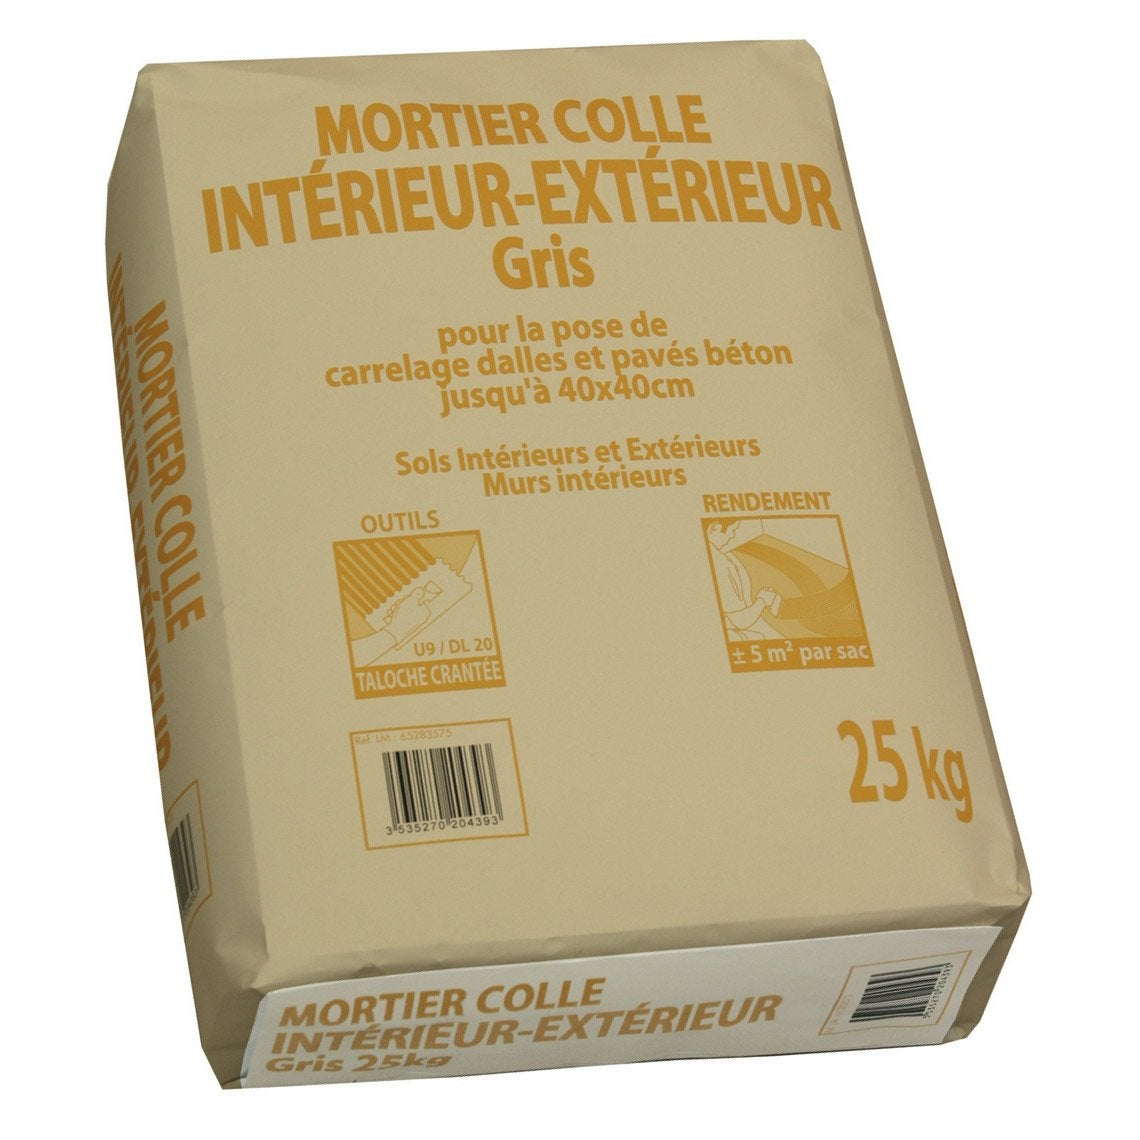 Colle pour carrelage int rieur ext rieur gris prb 25kg for Colle pour carrelage exterieur